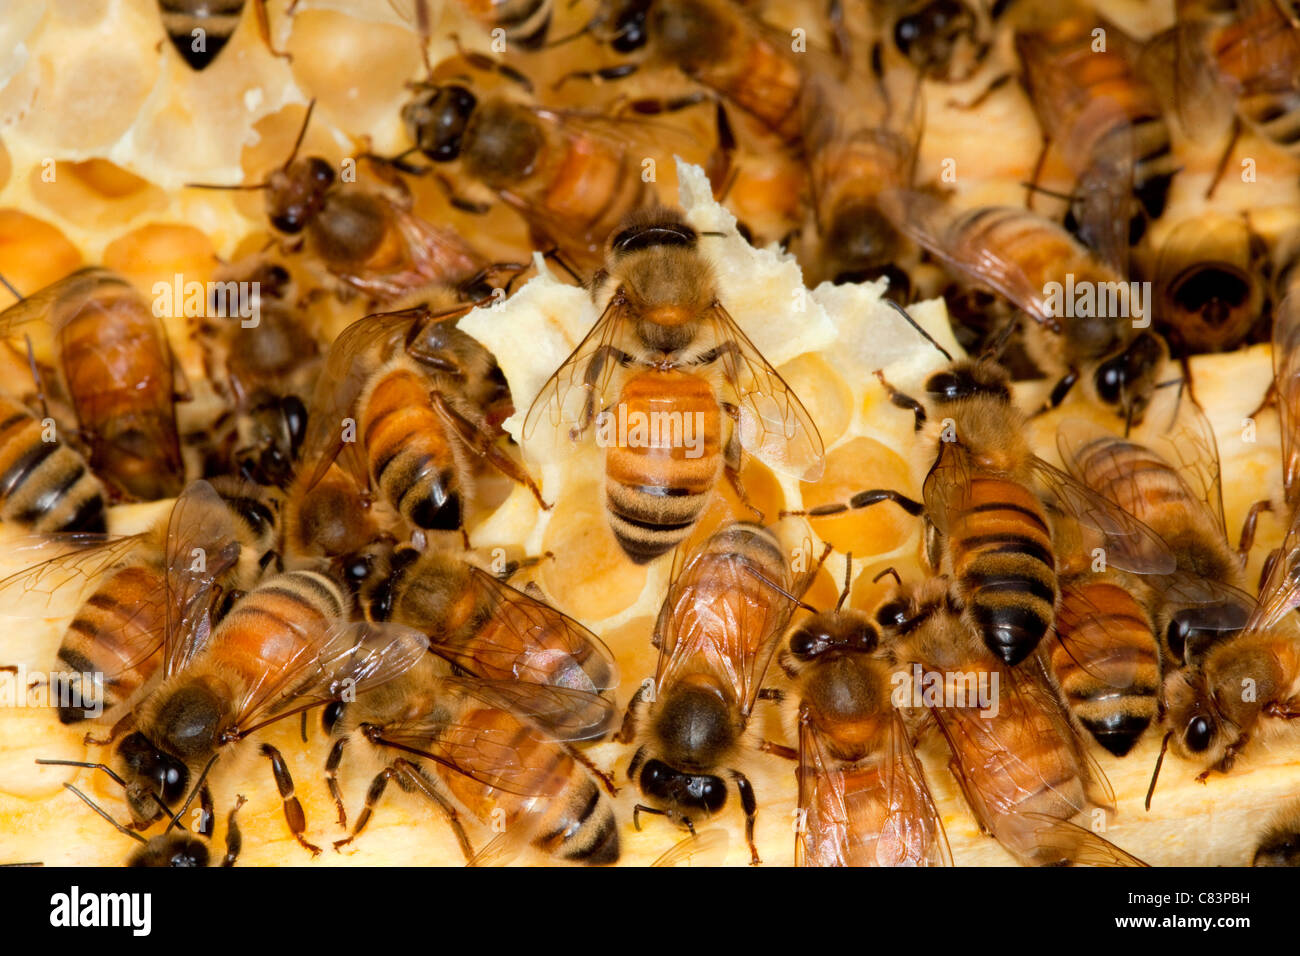 A colony of honey bees. Stock Photo